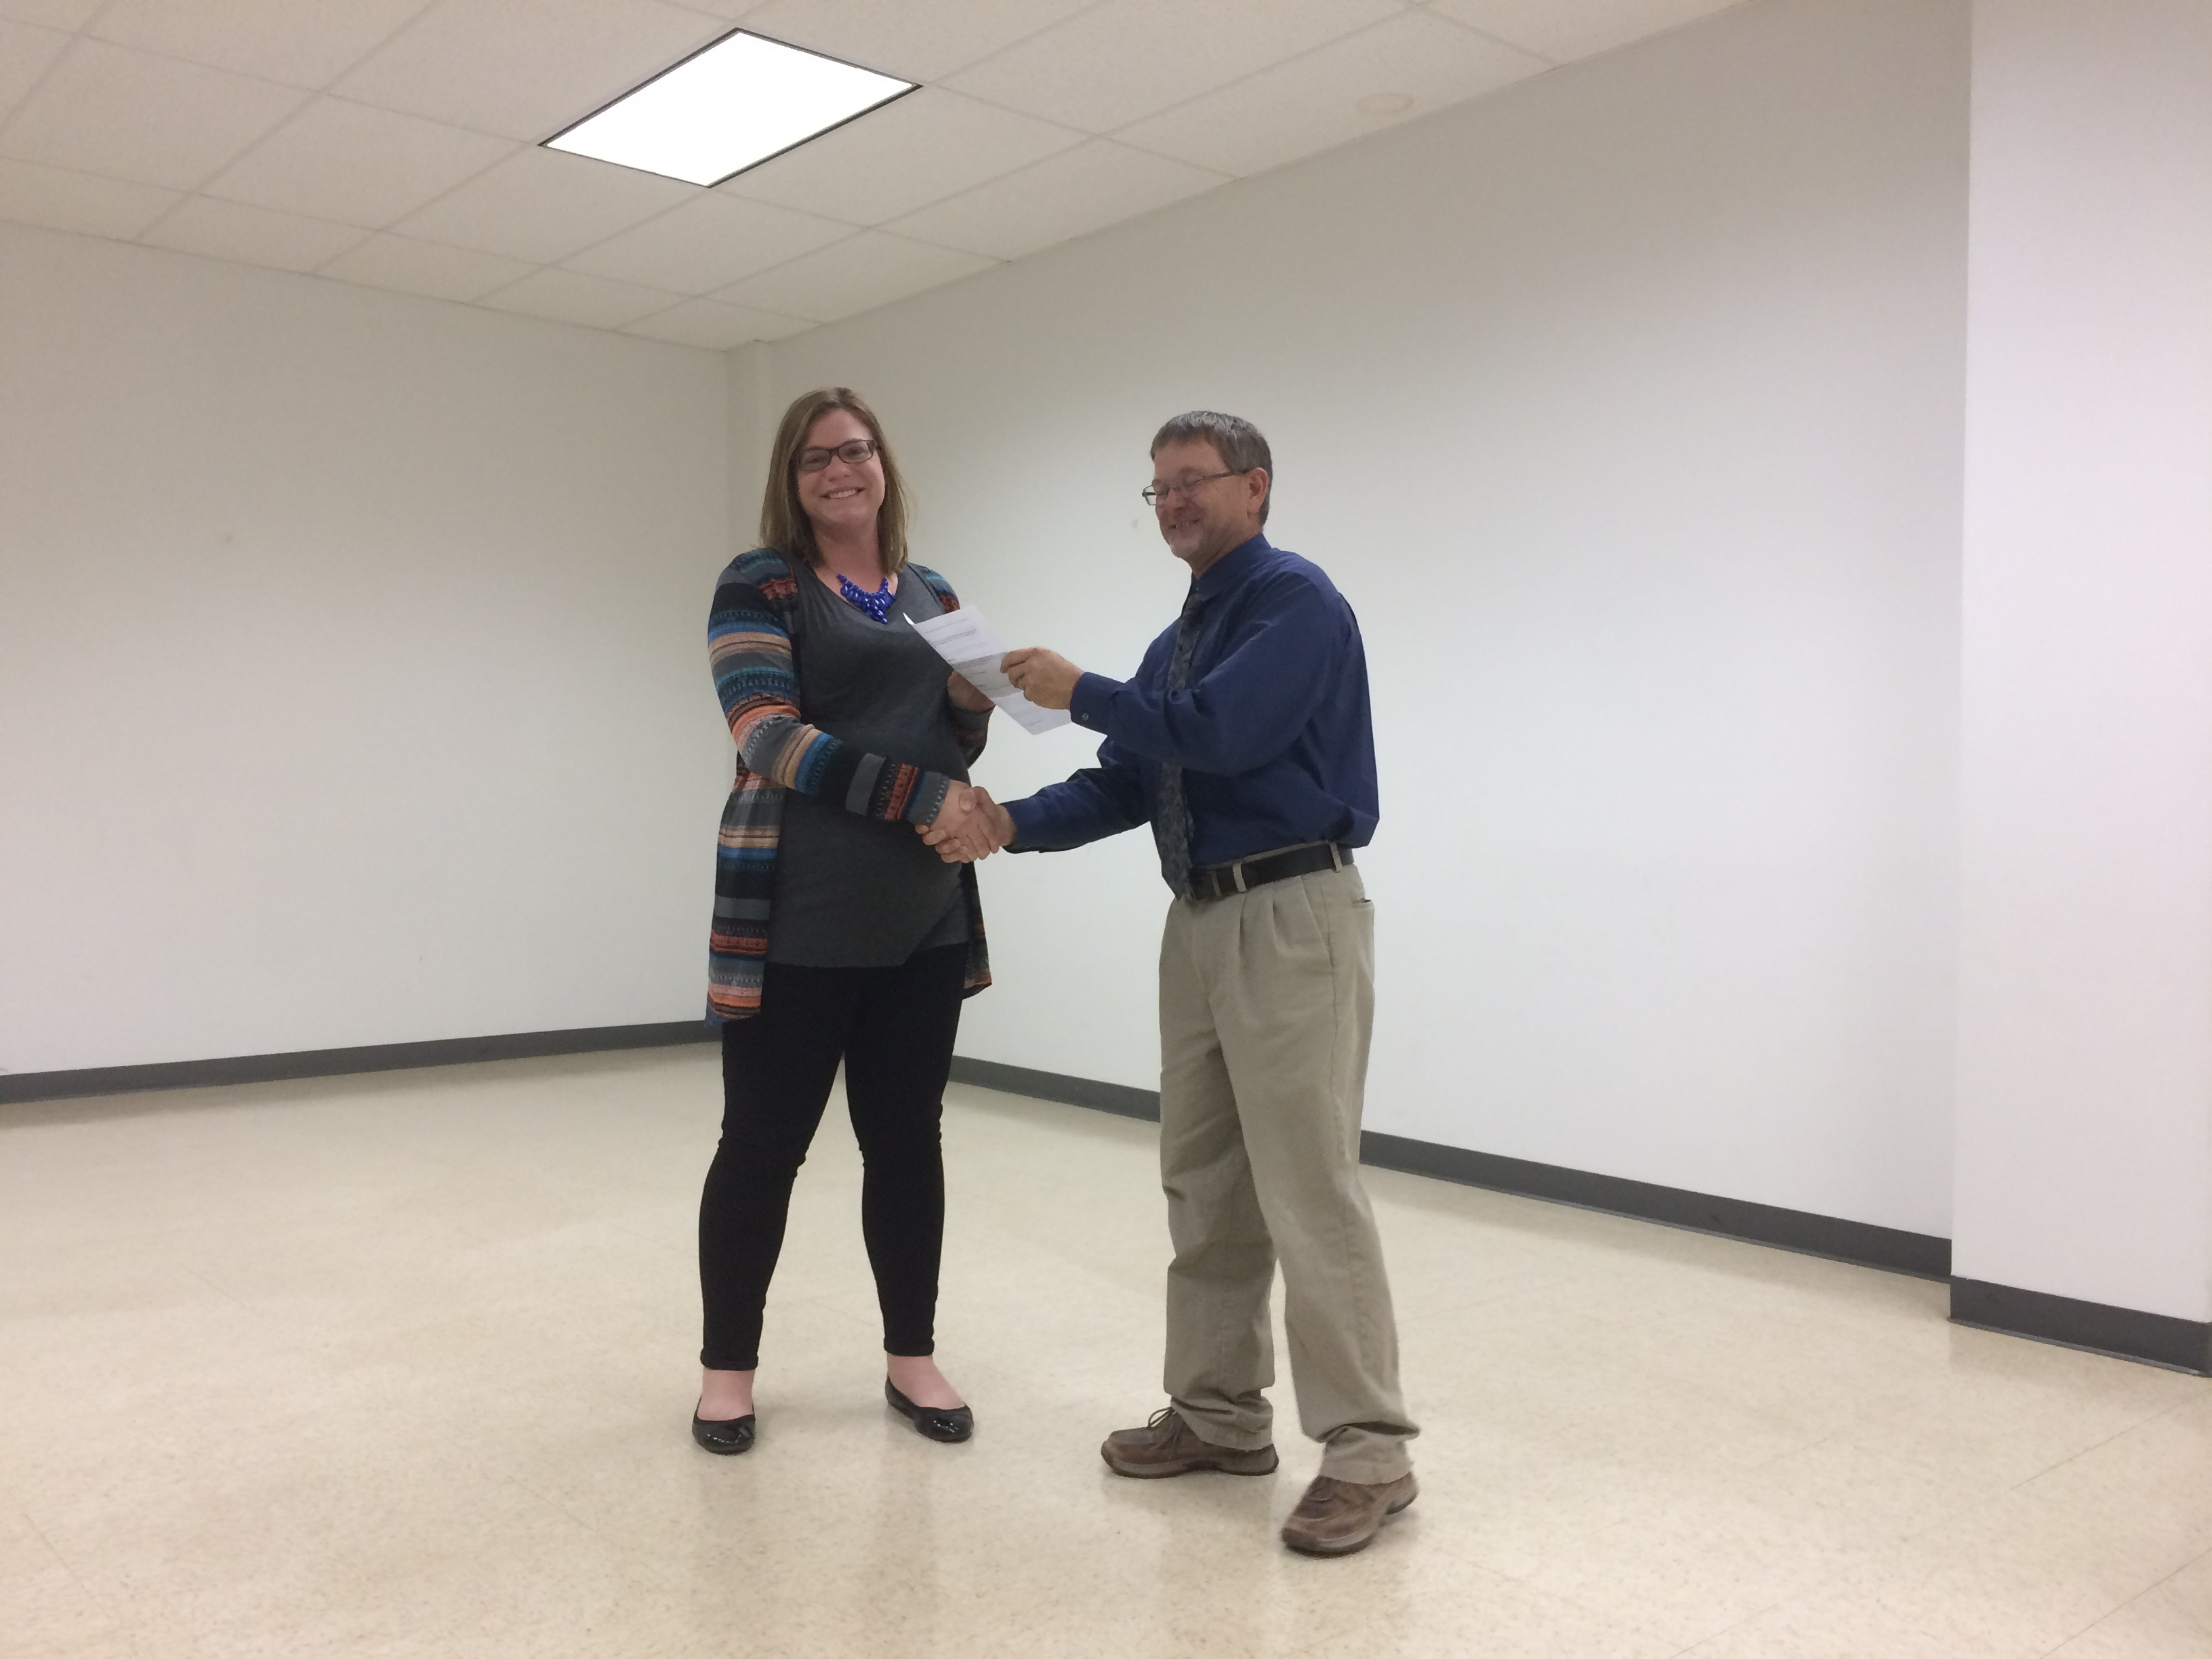 Kansas jewell county randall -  3 200 To Jewell County Adapt For Seed Money For An Alcohol And Drug Awareness And Prevention Program The Check Was Received By Nora Rhoades